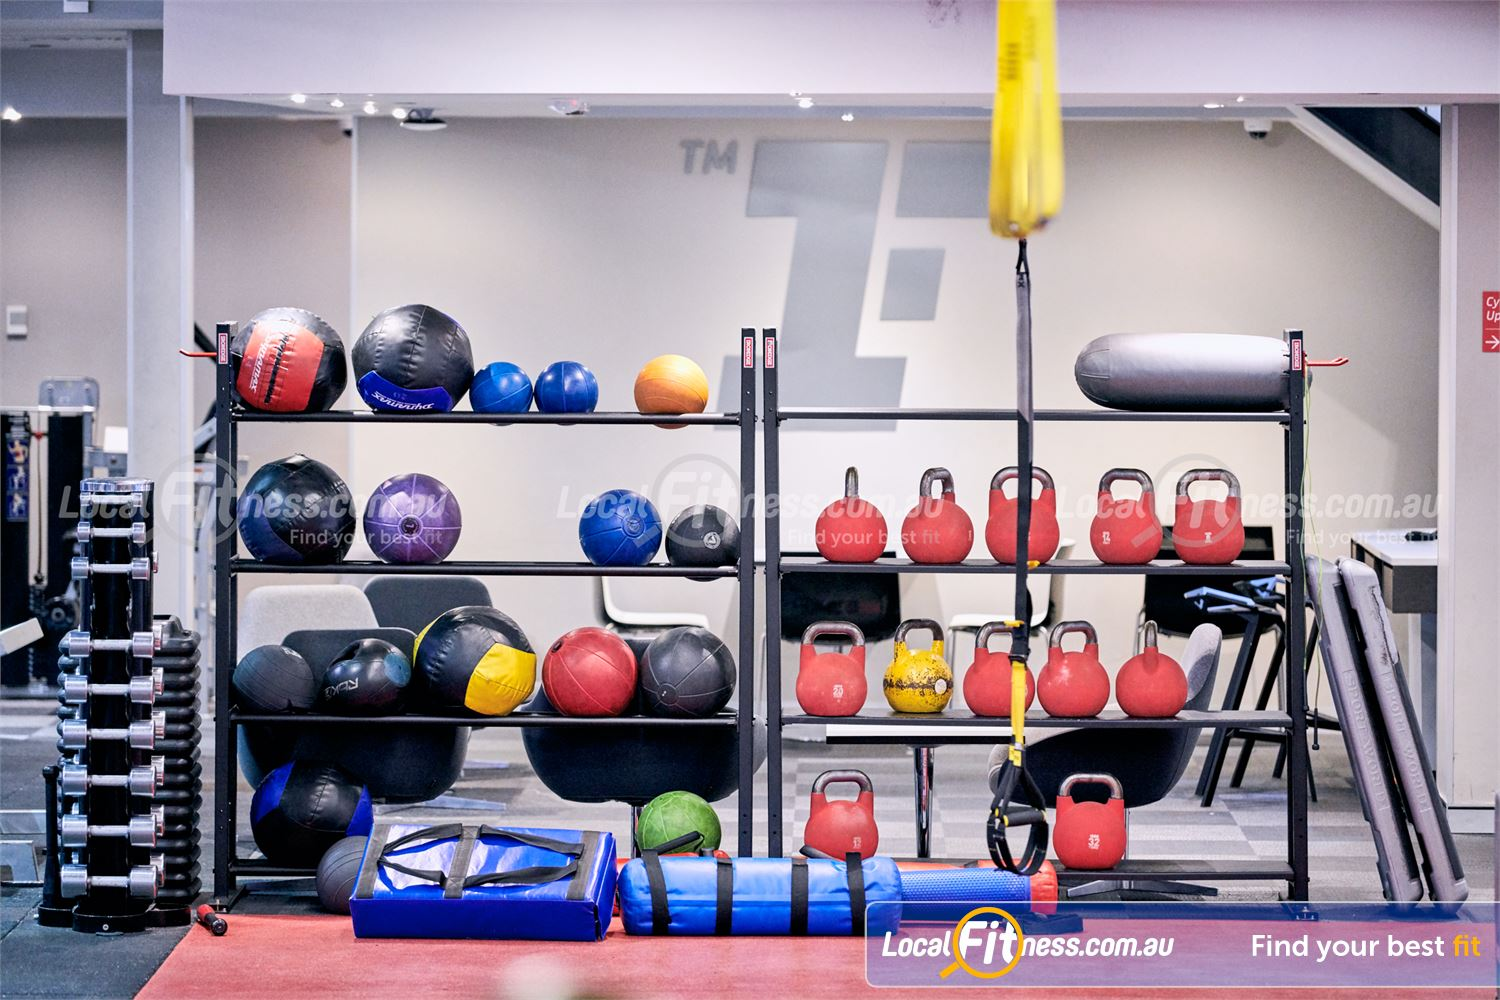 Fitness First Victoria Gardens Near Toorak Our functional training area is fully equipped with kettlebells, wall balls and more.